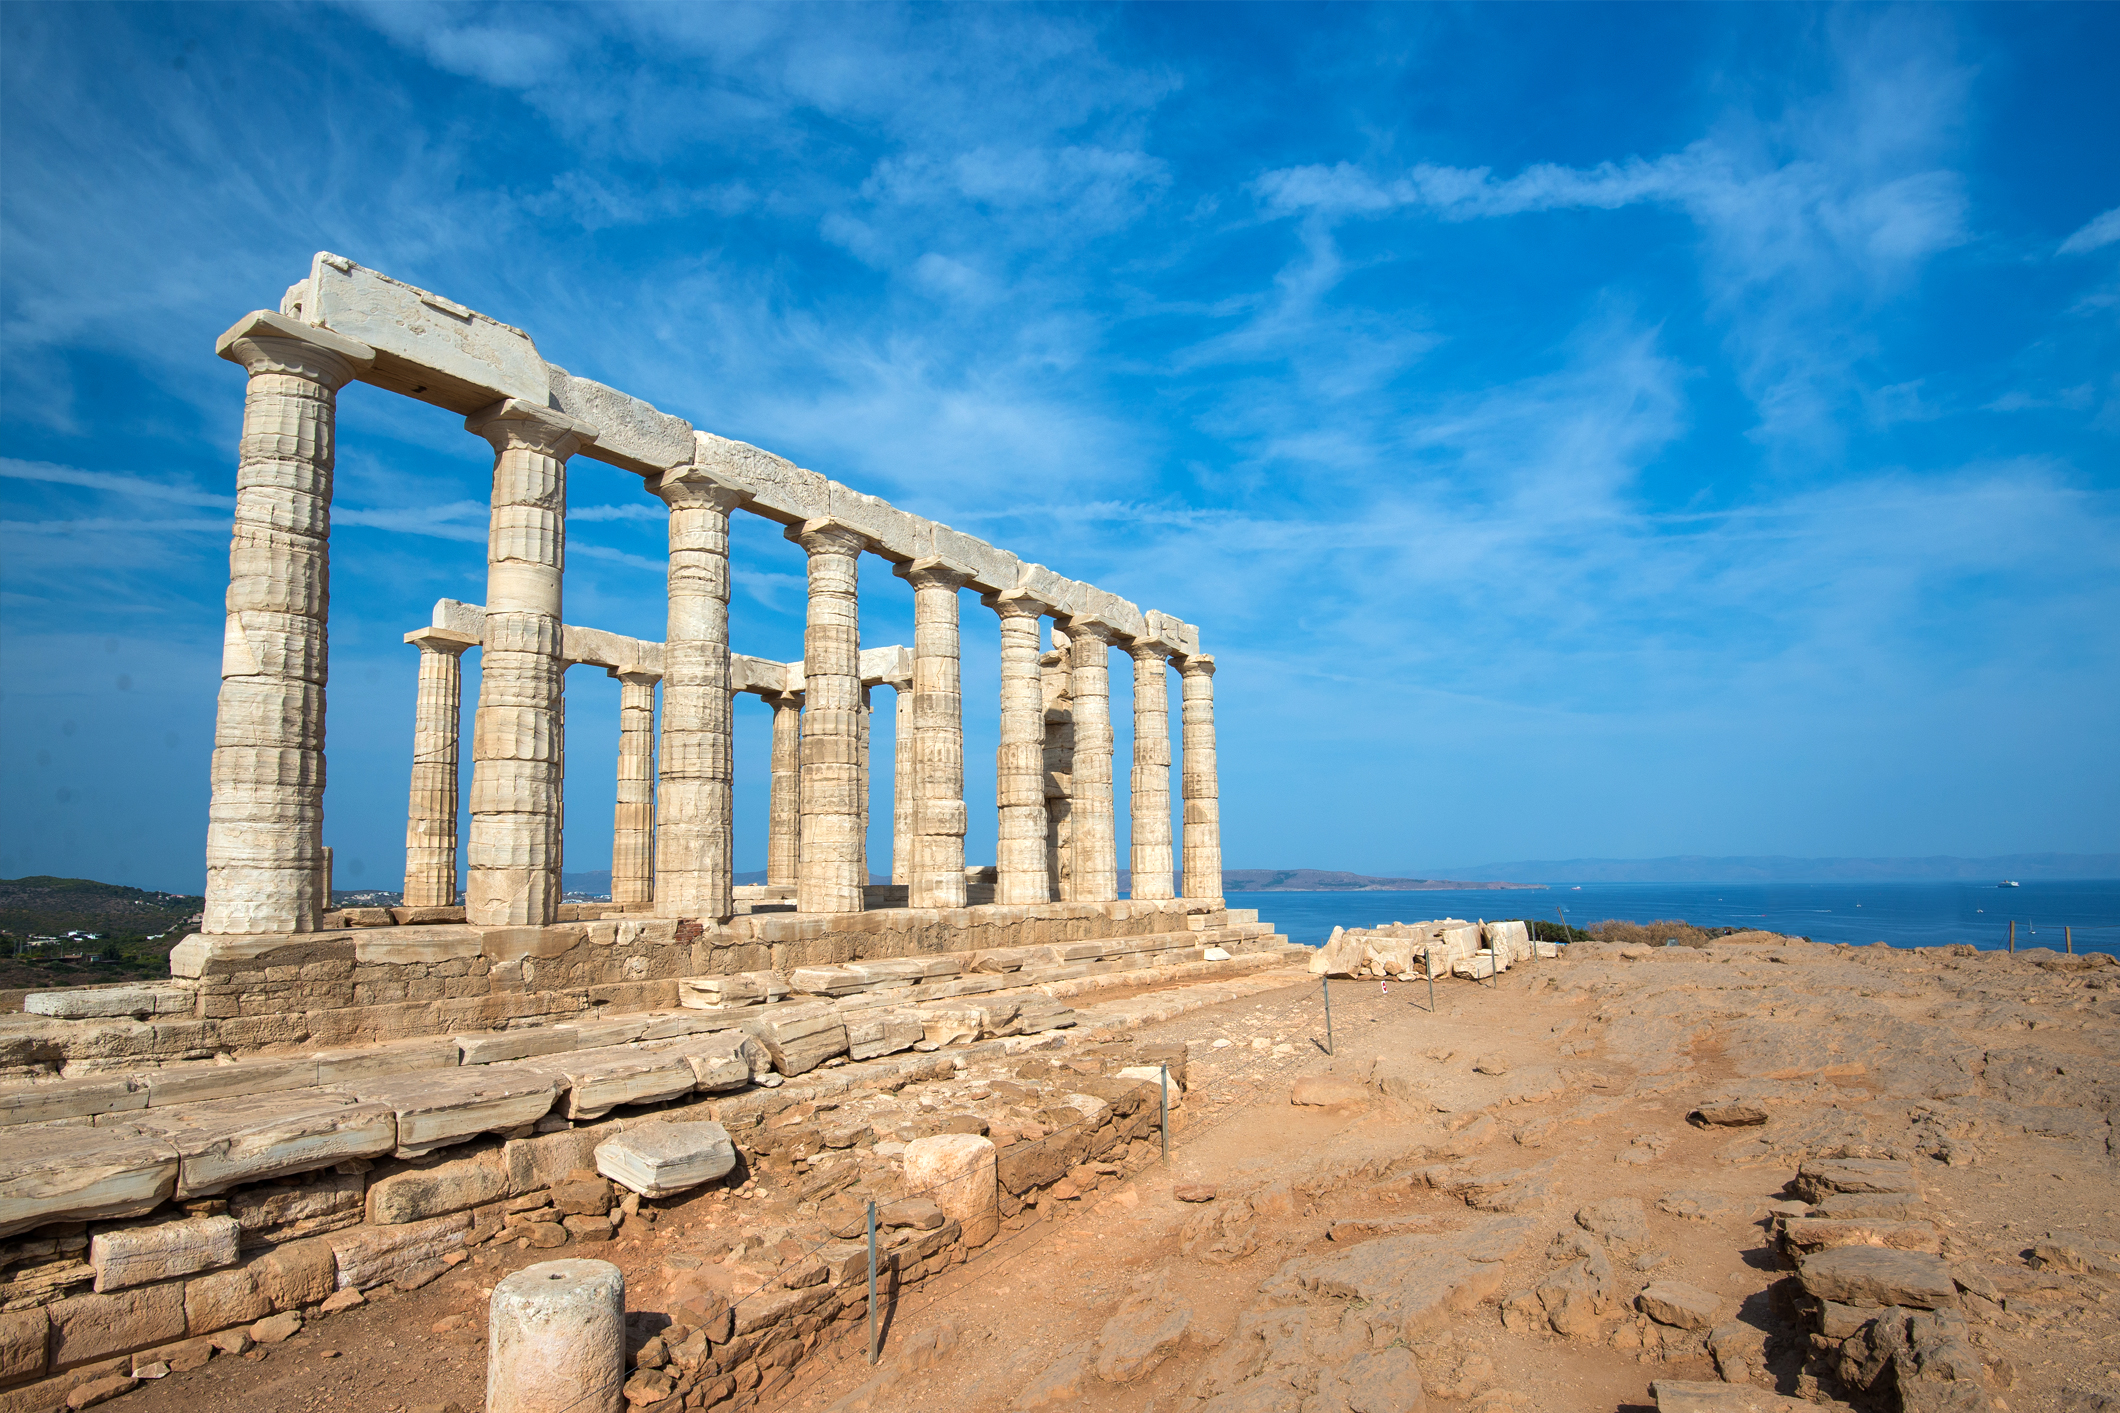 Now what 39 s the plan 2013 s best travel photos trip 11 - Ancient greece wallpaper hd ...